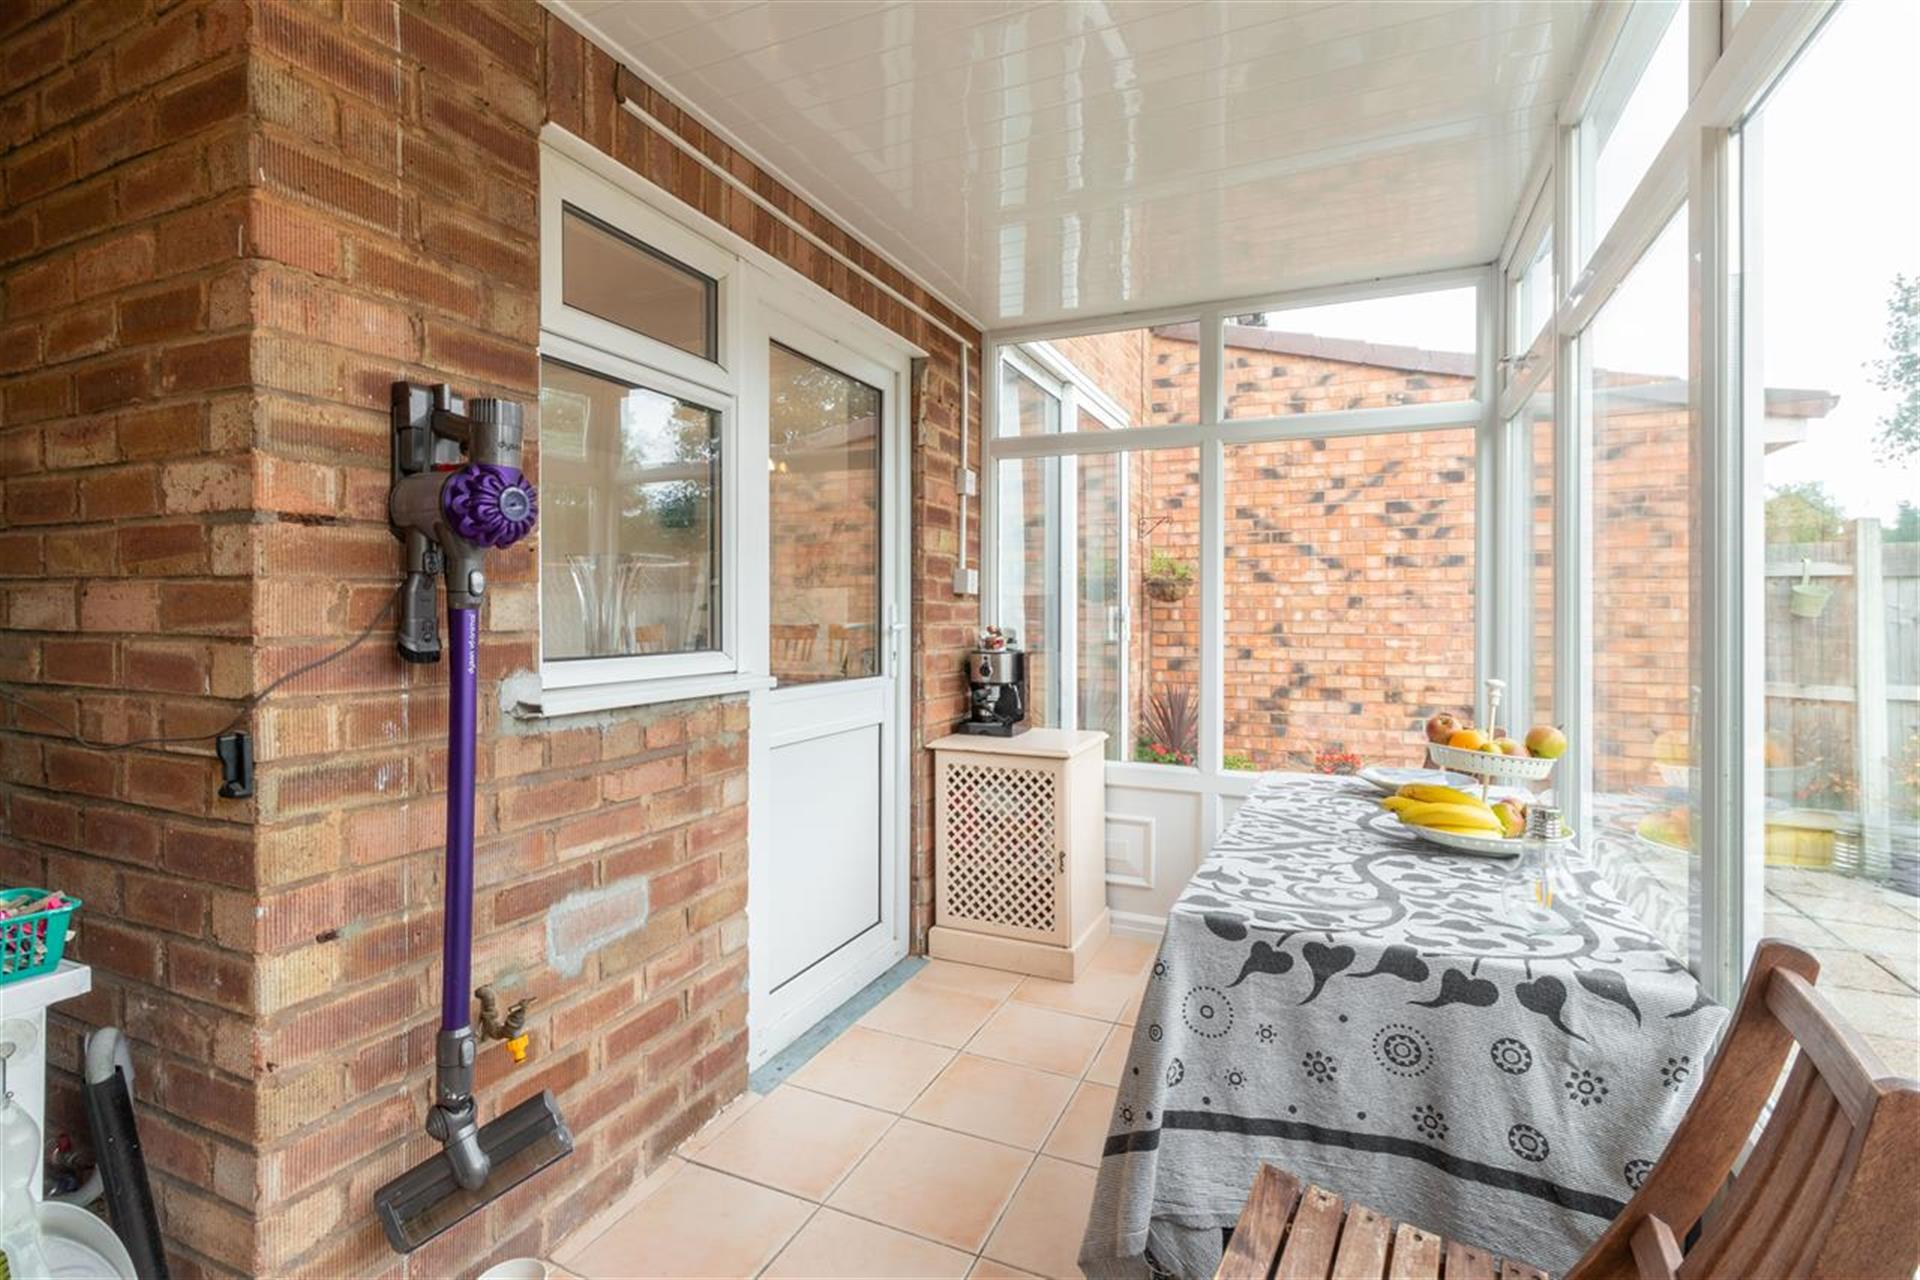 4 Bedroom Semi-detached House For Sale - Conservatory